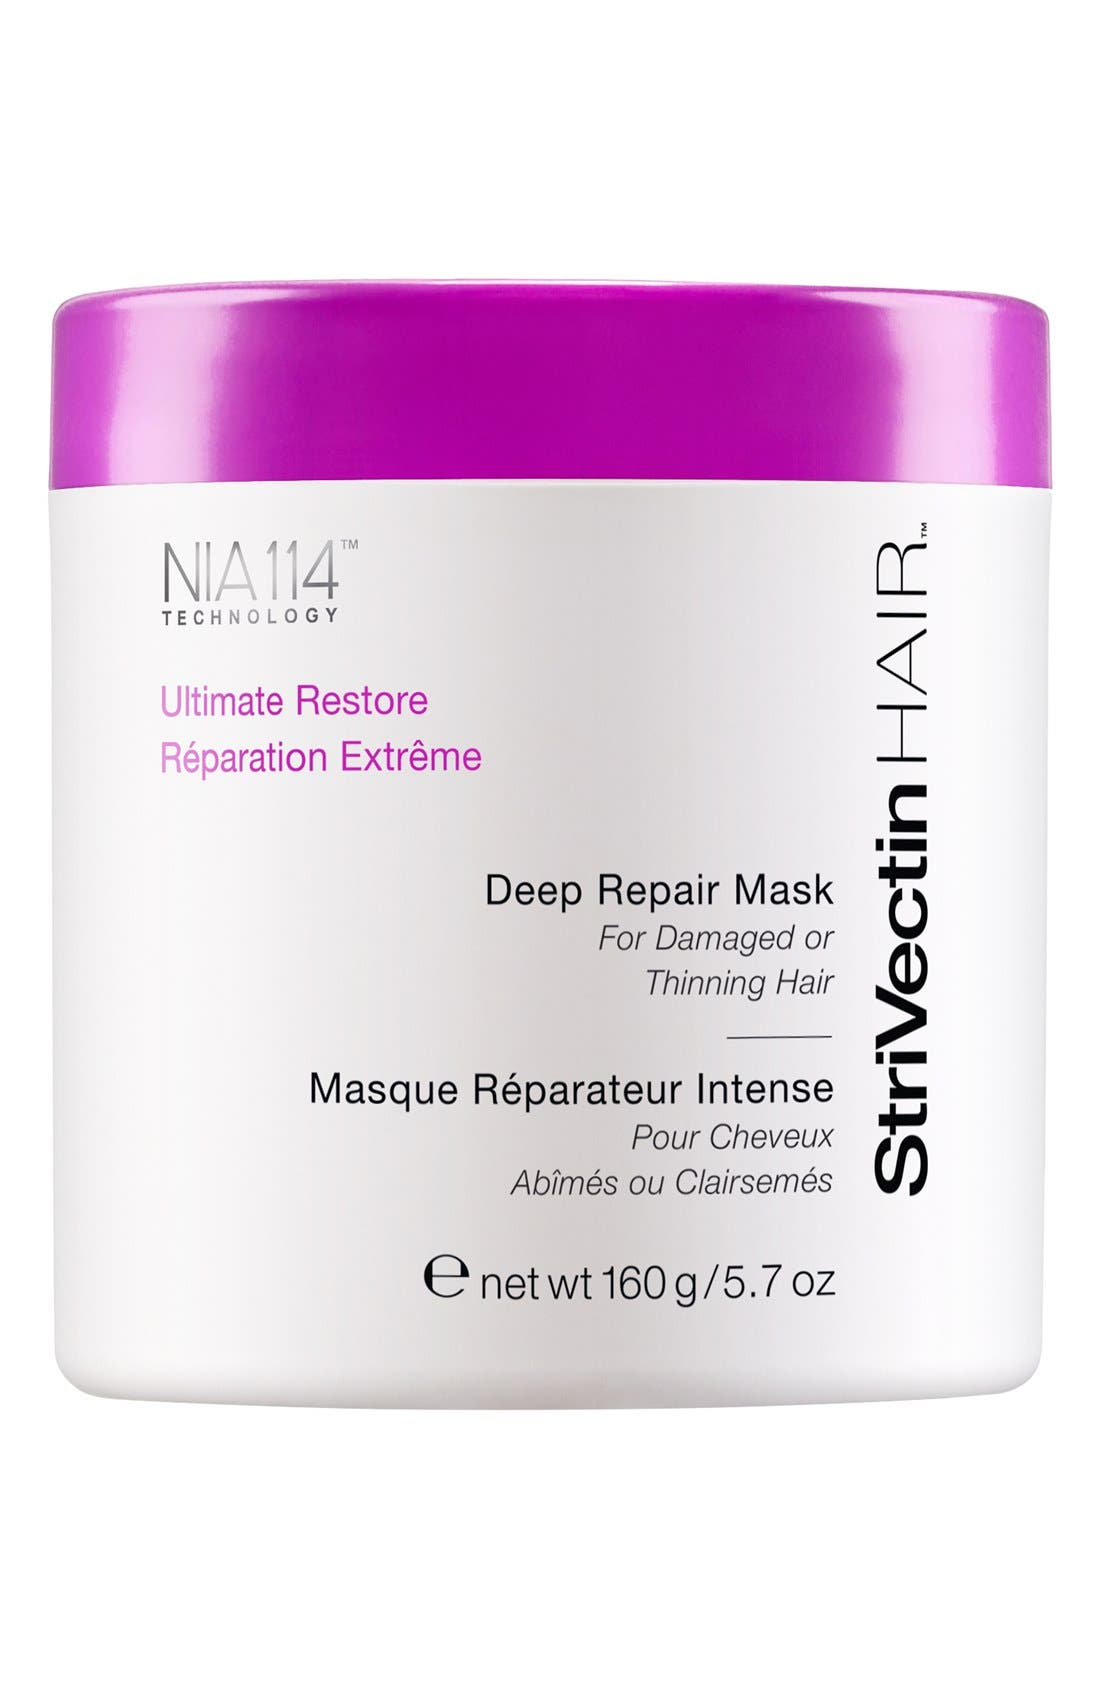 StriVectinHAIR<sup>™</sup> 'Ultimate Restore' Deep Repair Mask for Damaged or Thinning Hair,                             Main thumbnail 1, color,                             000